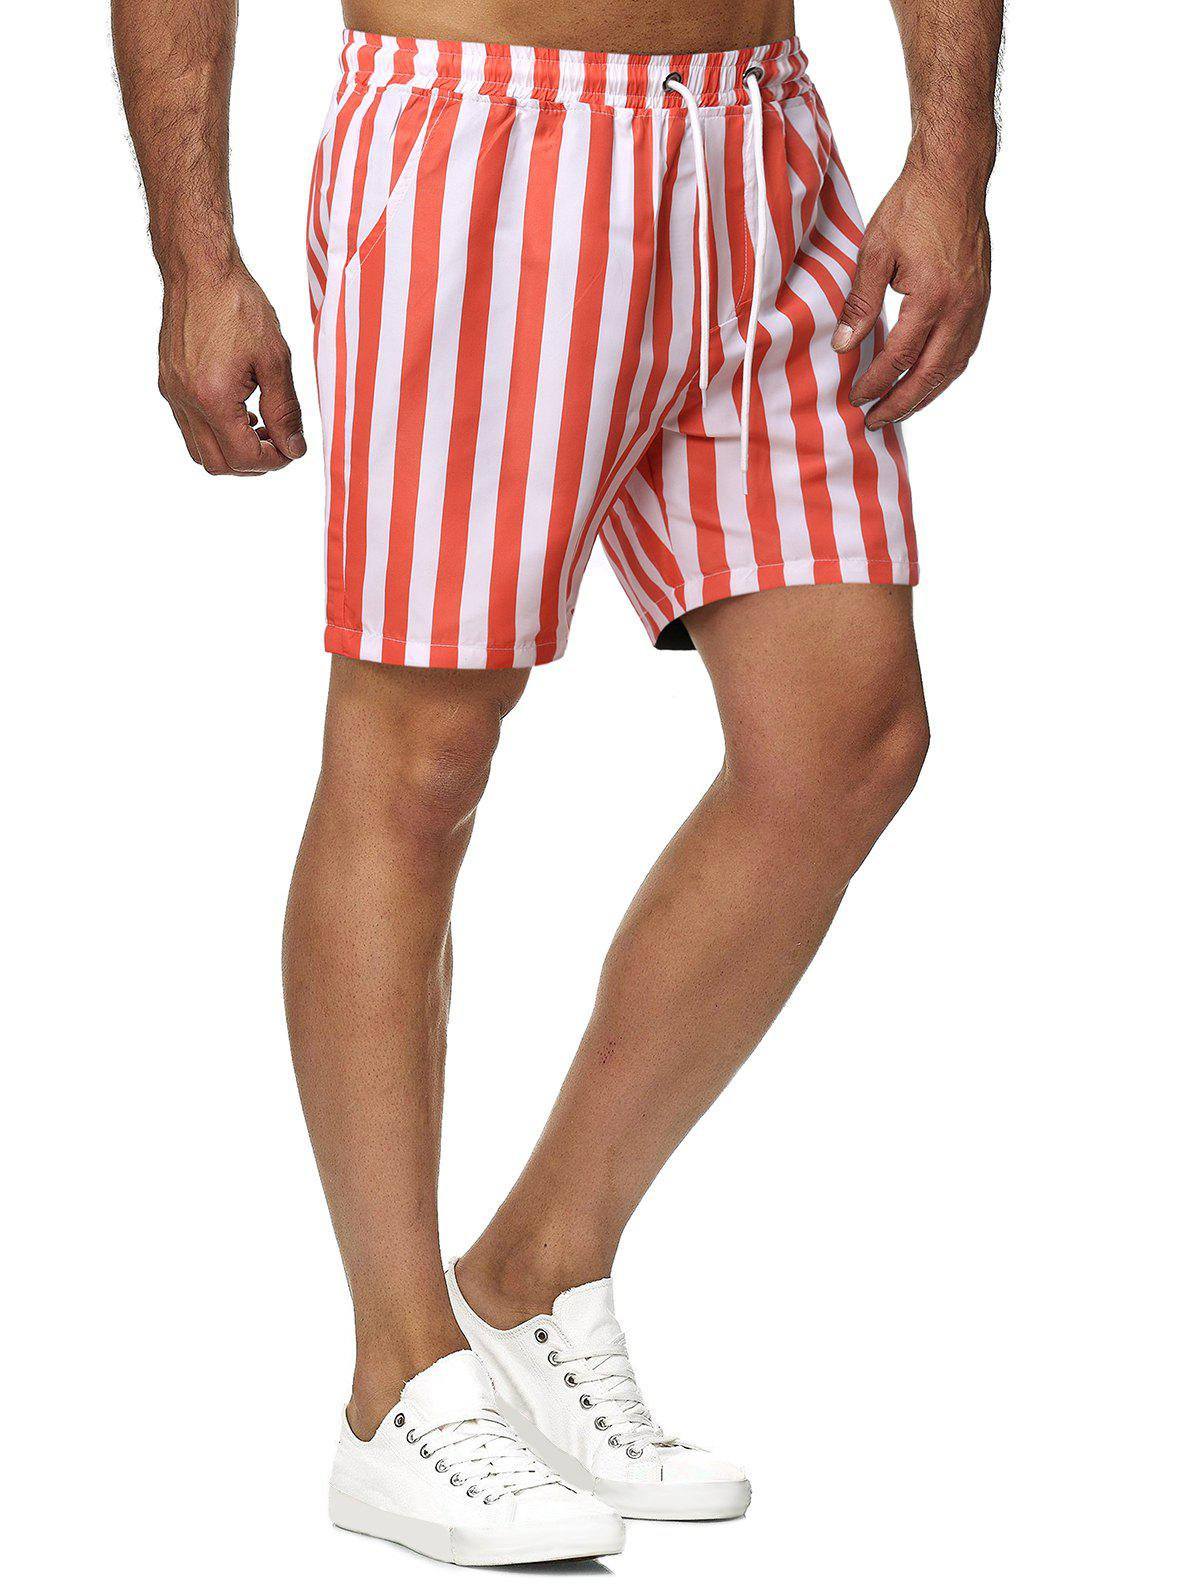 Hot Contrast Color Stripes Pattern Beach Shorts